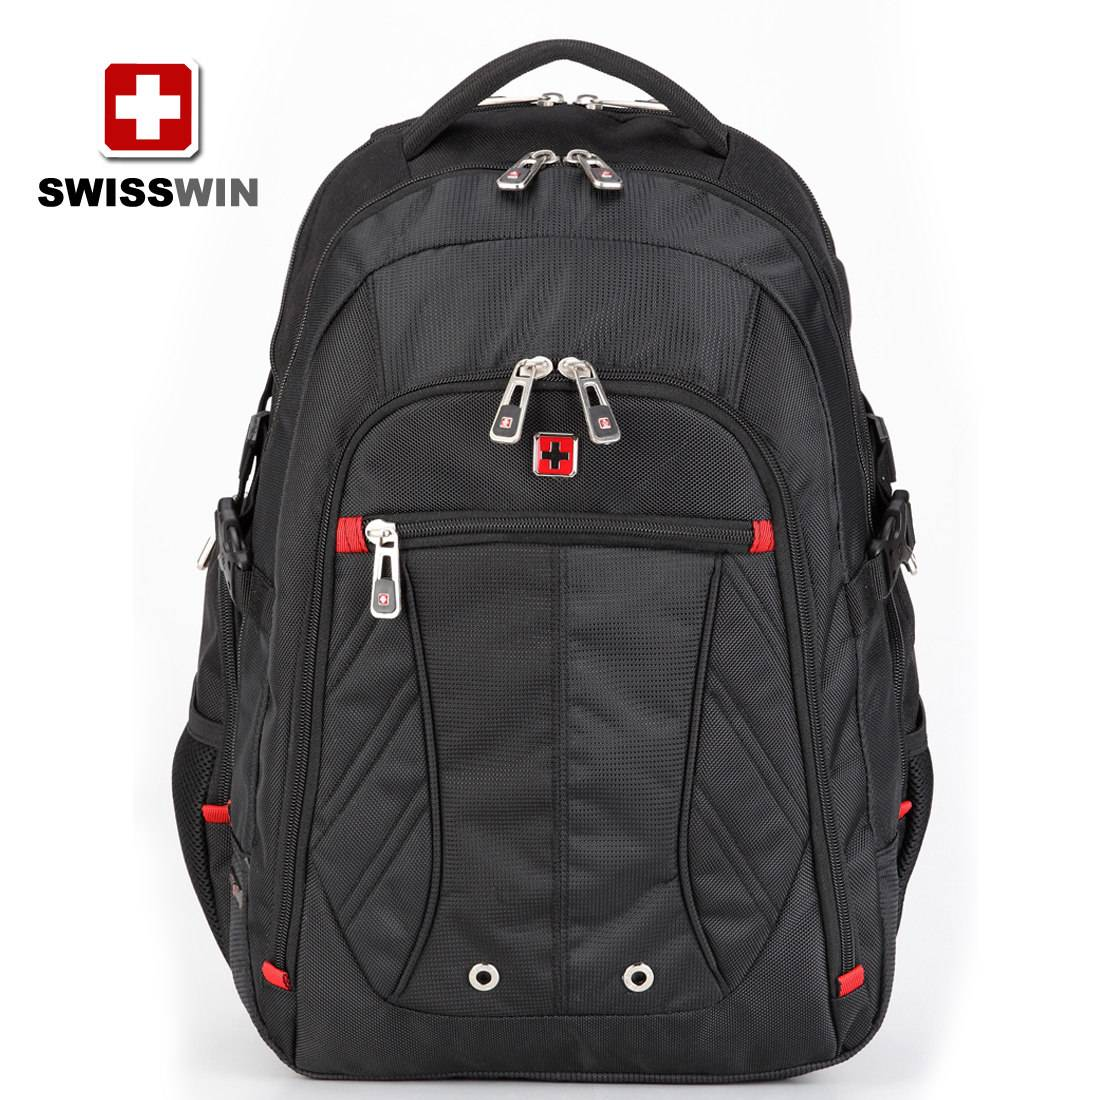 swisswin Army Knife Computer backpack,backpack for boys and girls ,schoolbag backpack